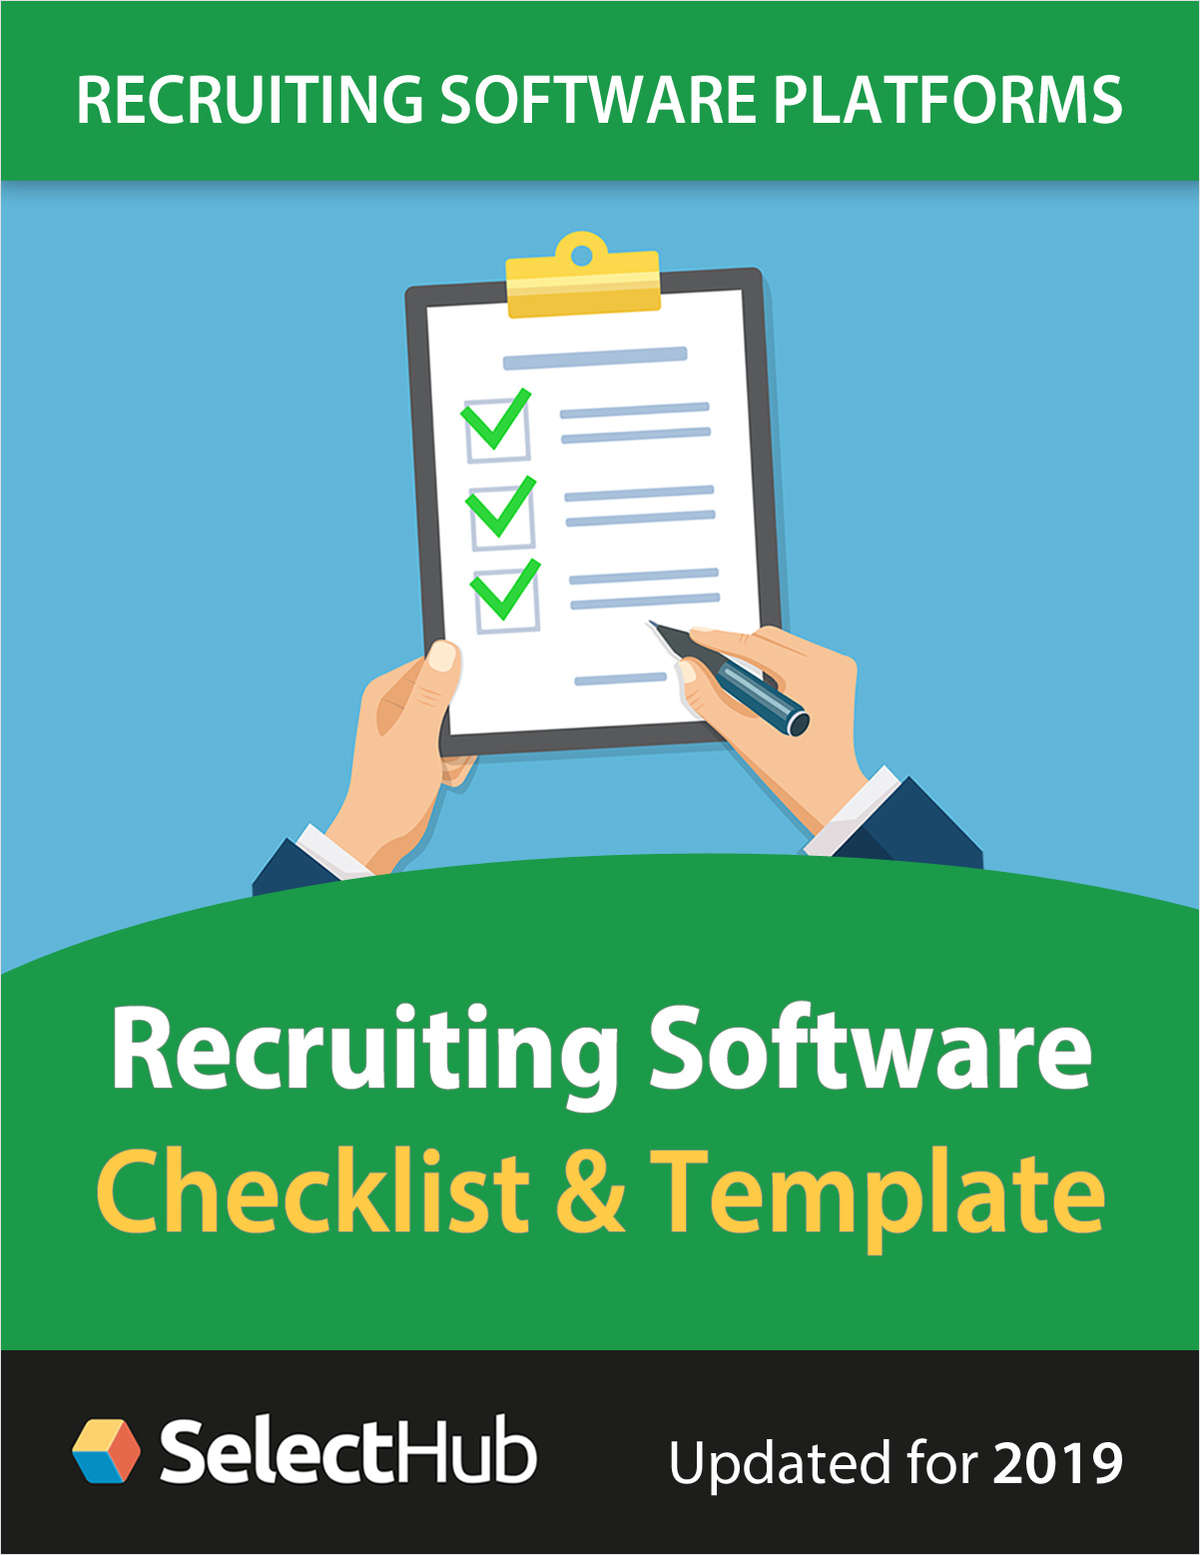 Recruiting Software Checklist & Requirements Template